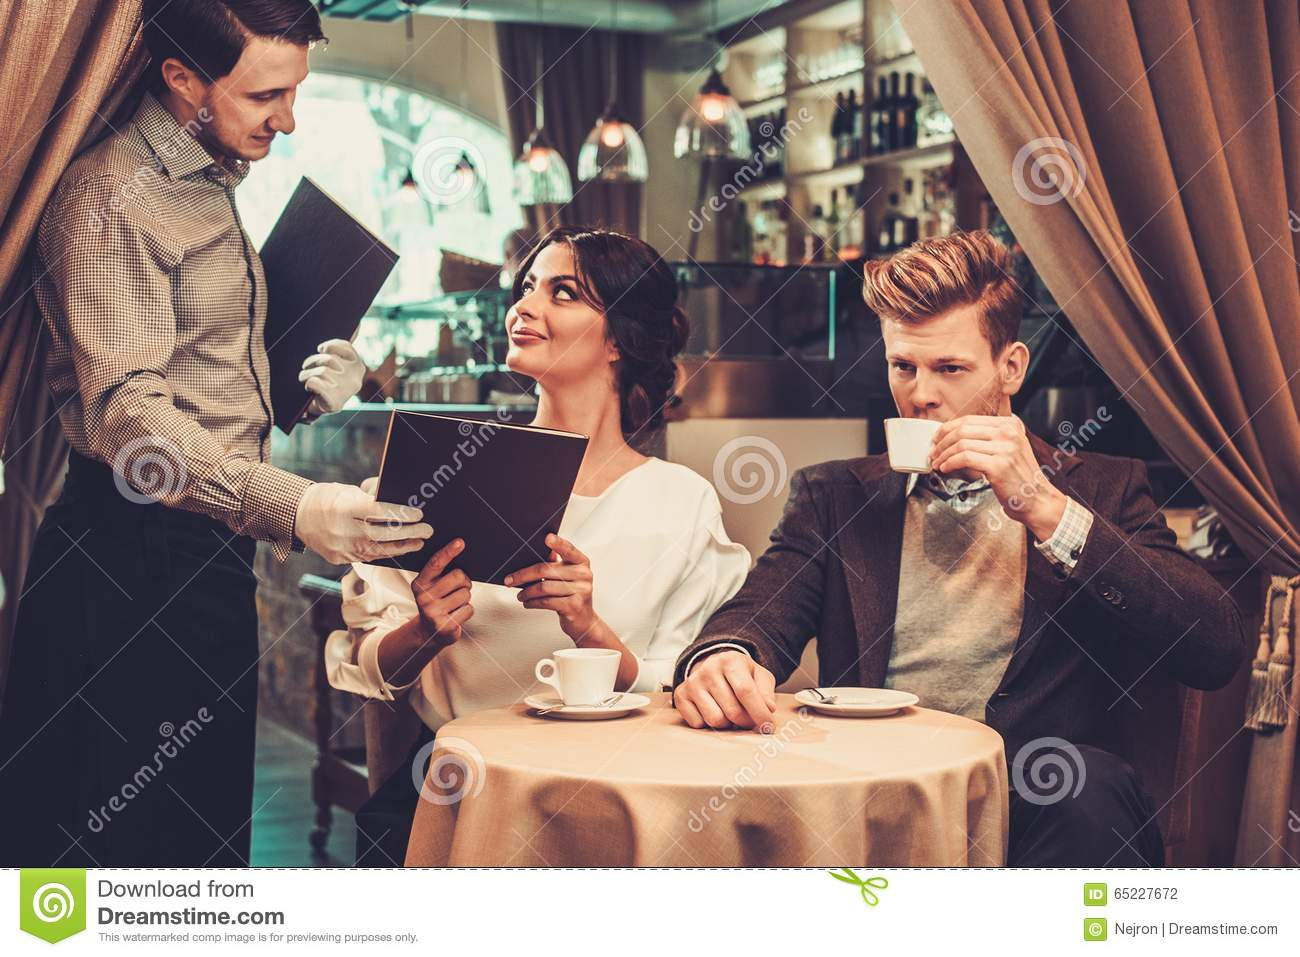 Waiter taking order from stylish wealthy couple